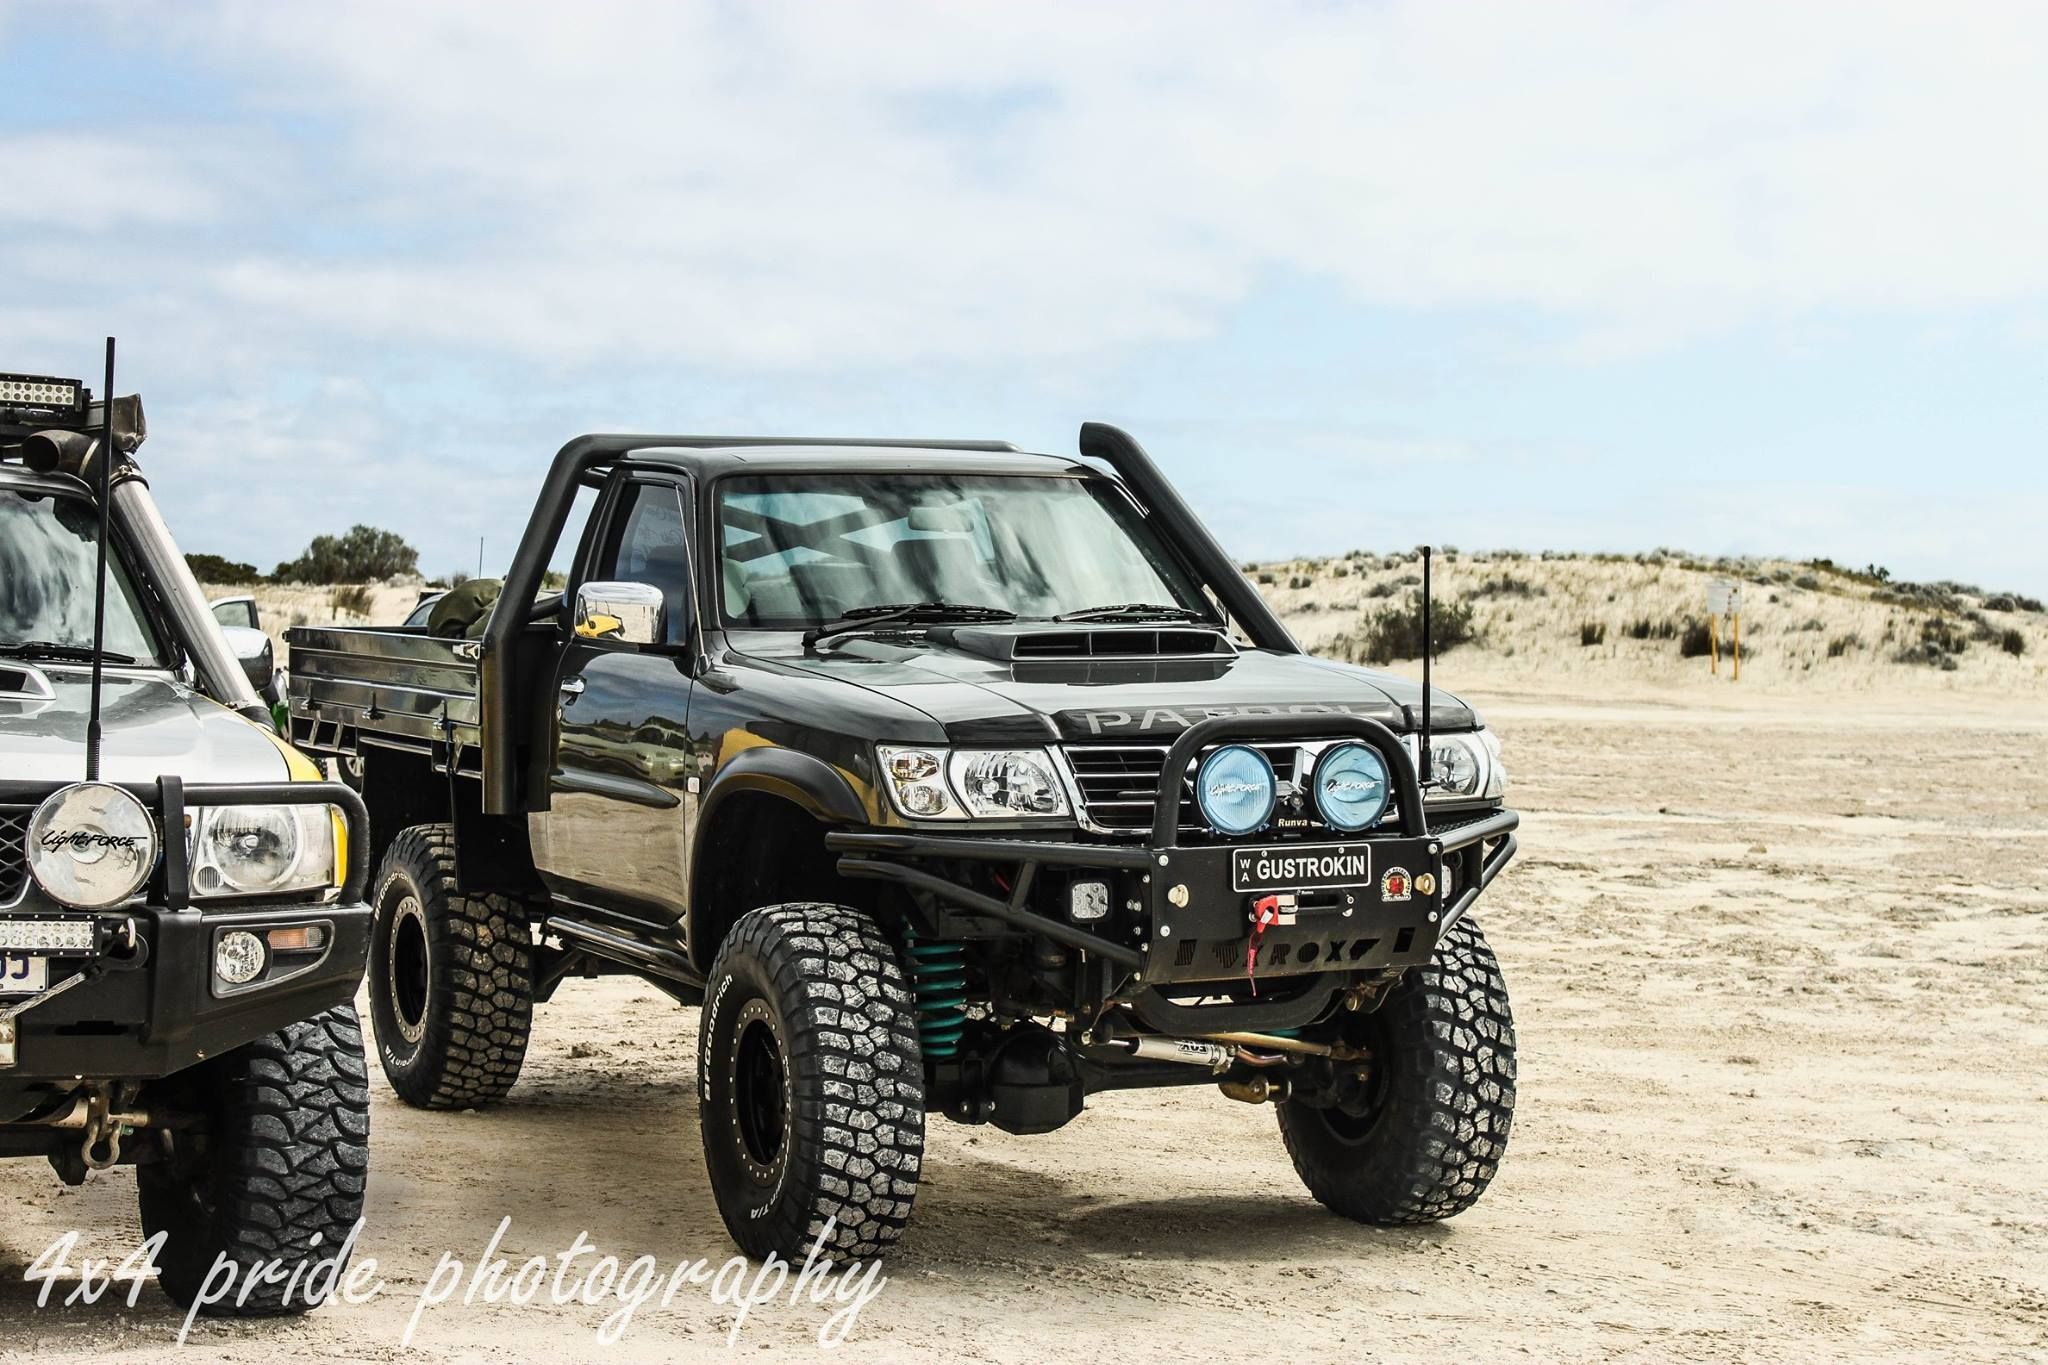 Pin By Jose Mendez On Boys Toys In 2020 Nissan Patrol Nissan 4x4 Toyota Trucks